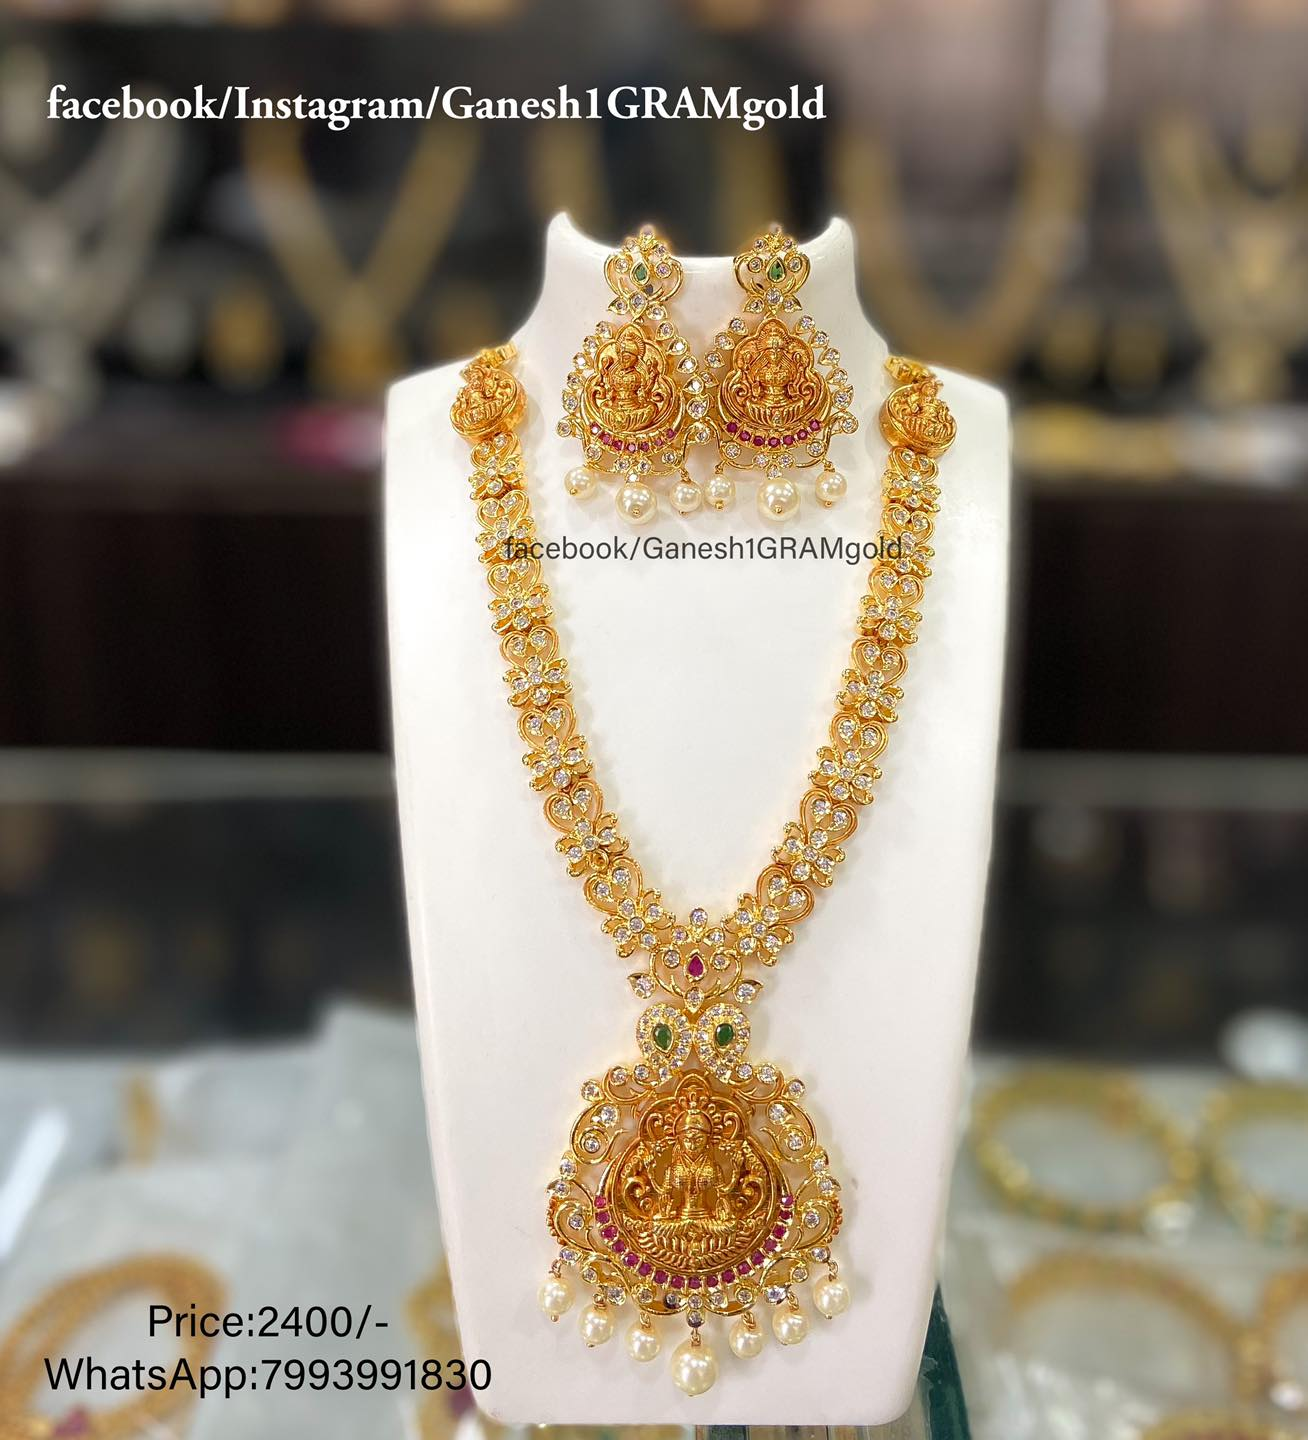 One gram gold Cz stones necklace.....